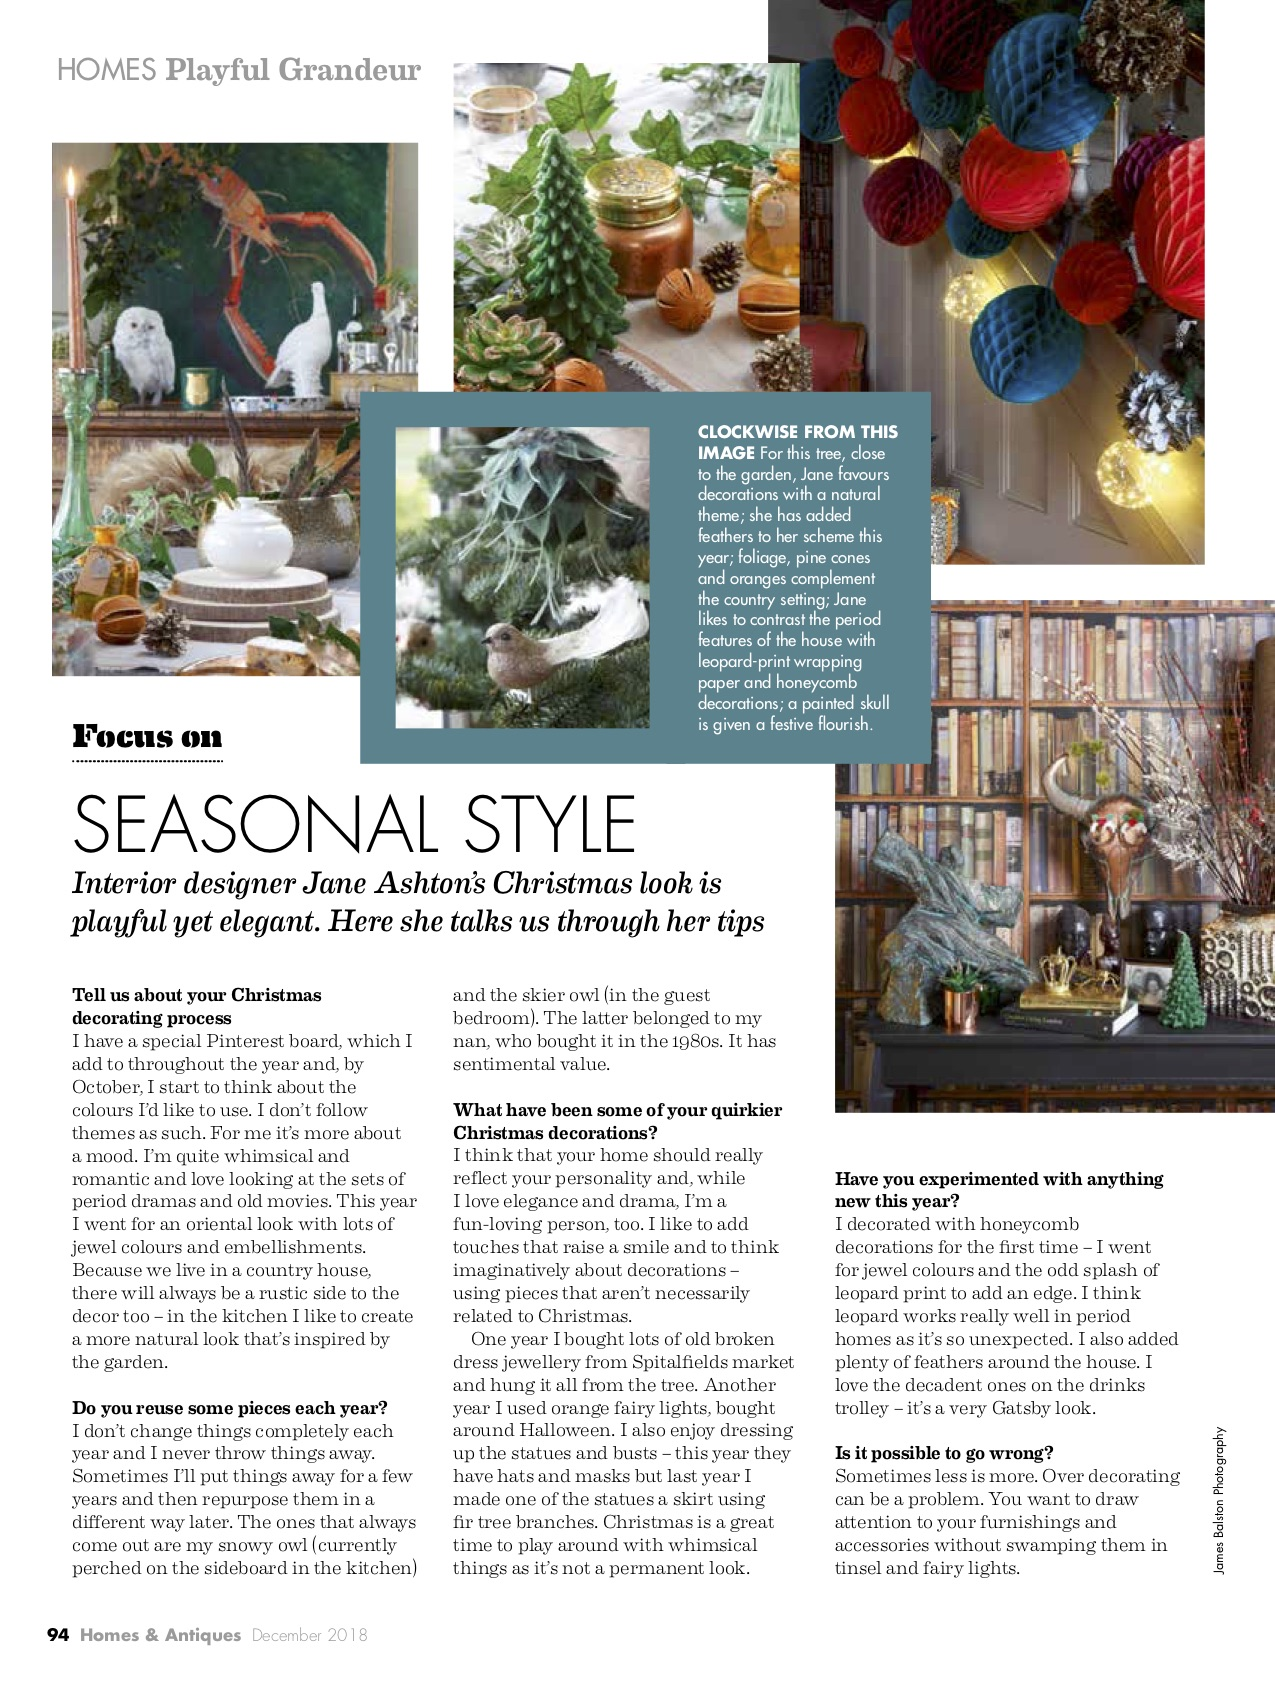 Homes & Antiques Christmas